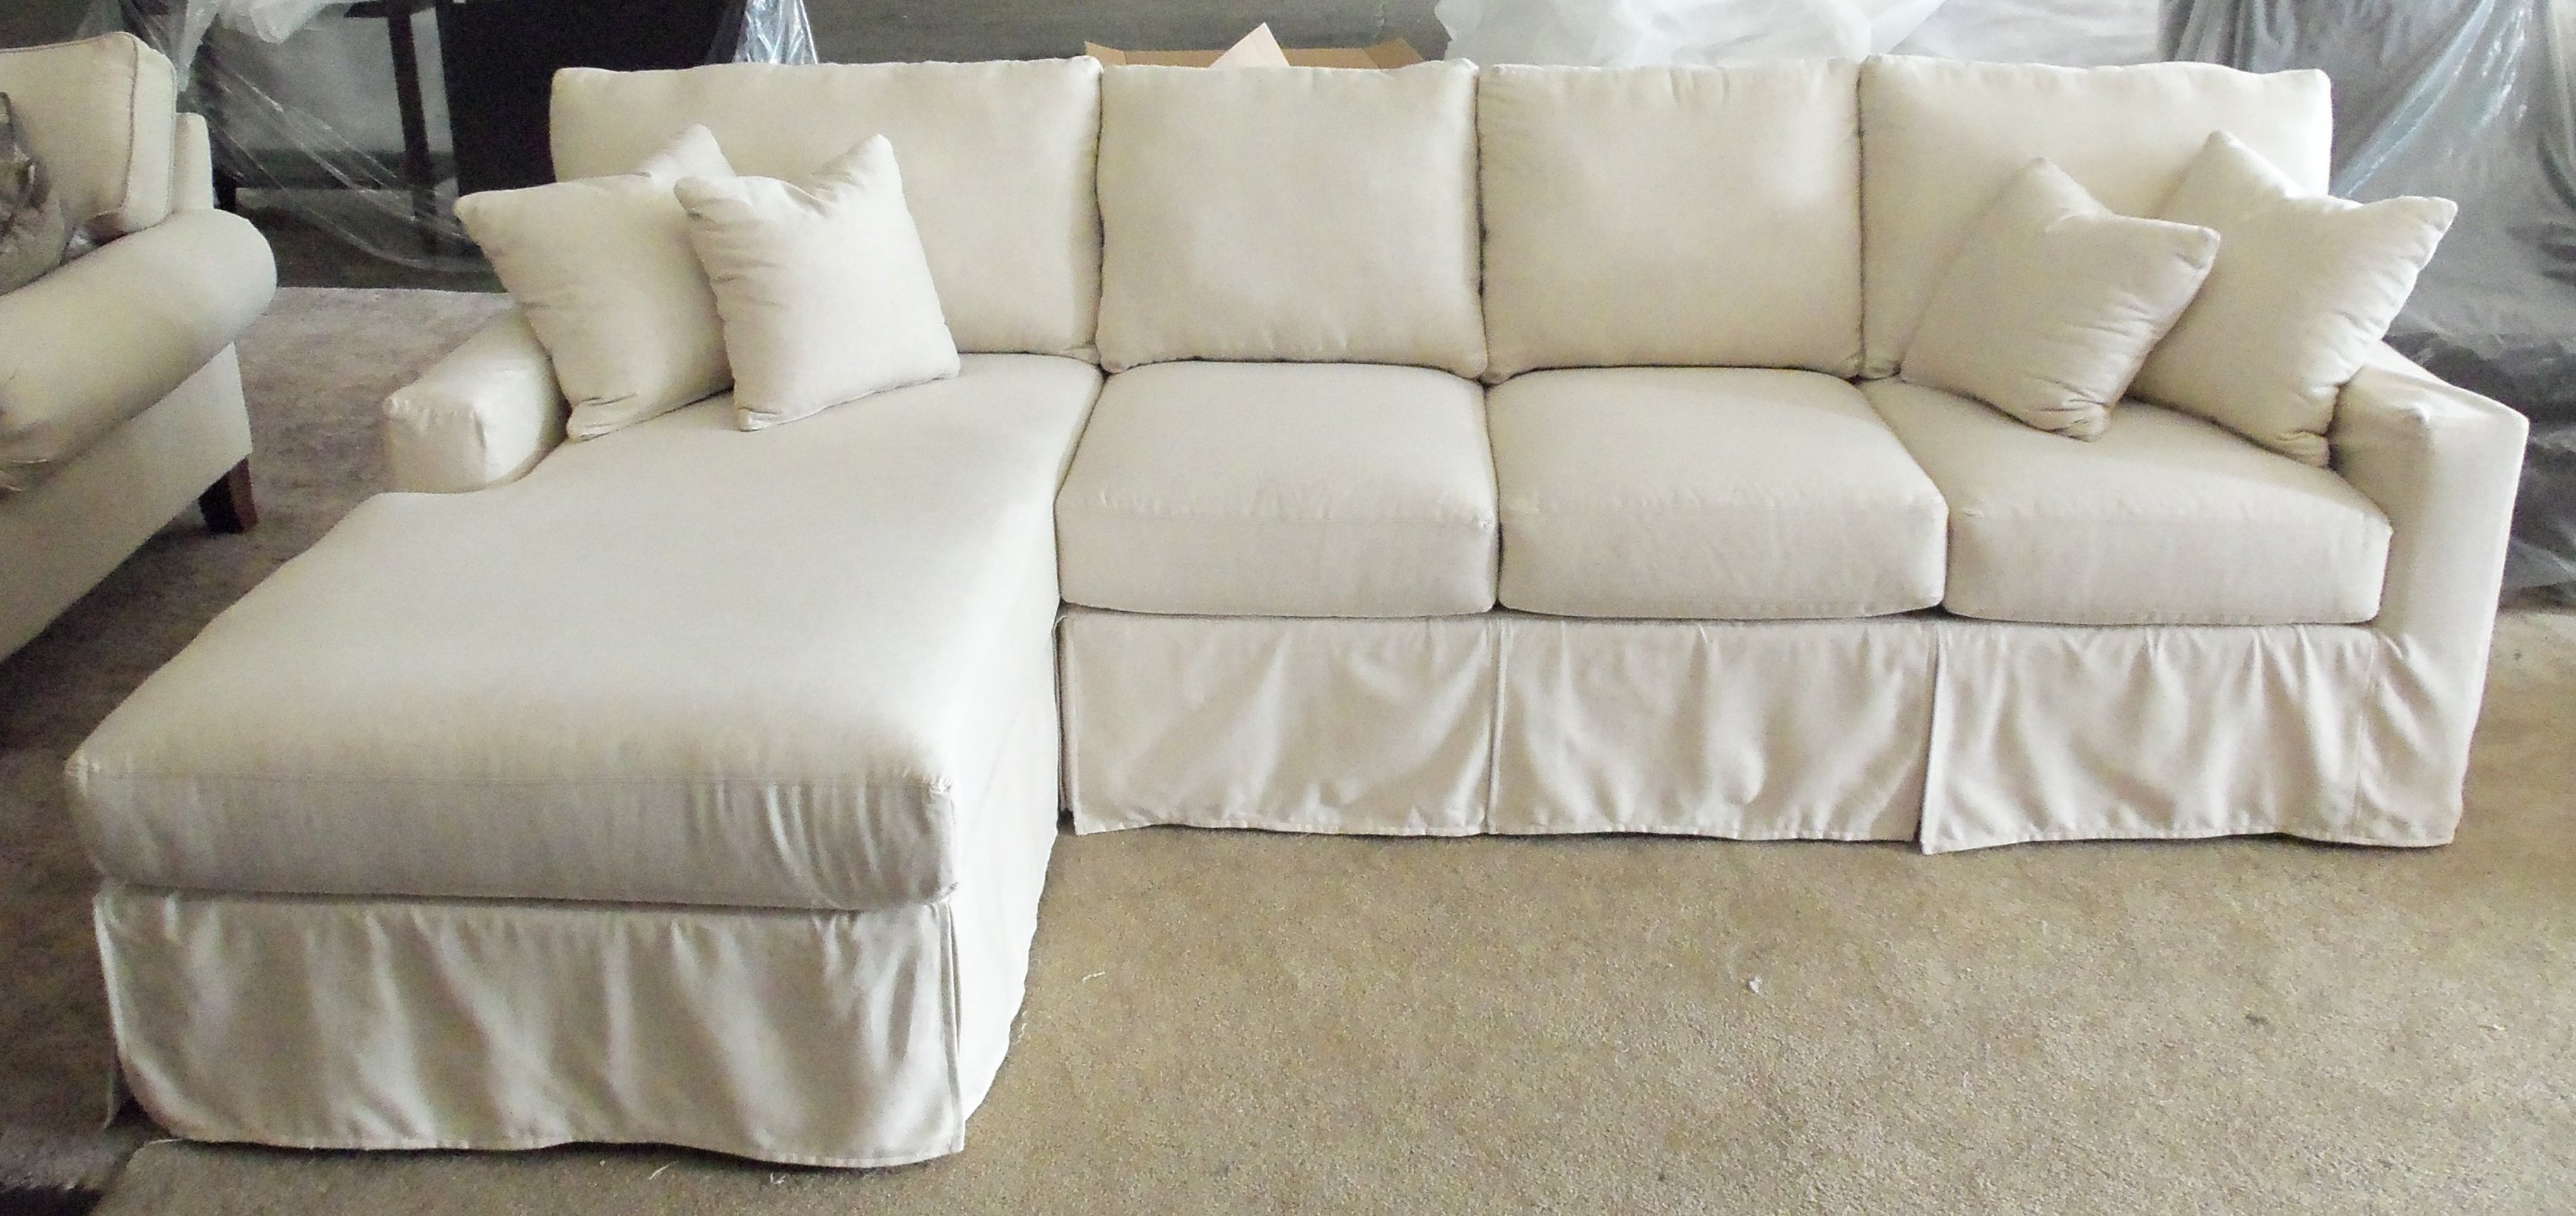 Most Recent Sectional Sofa With Microfiber Chaise Together Loveseat In With Regard To Chaise Slipcovers (View 7 of 15)